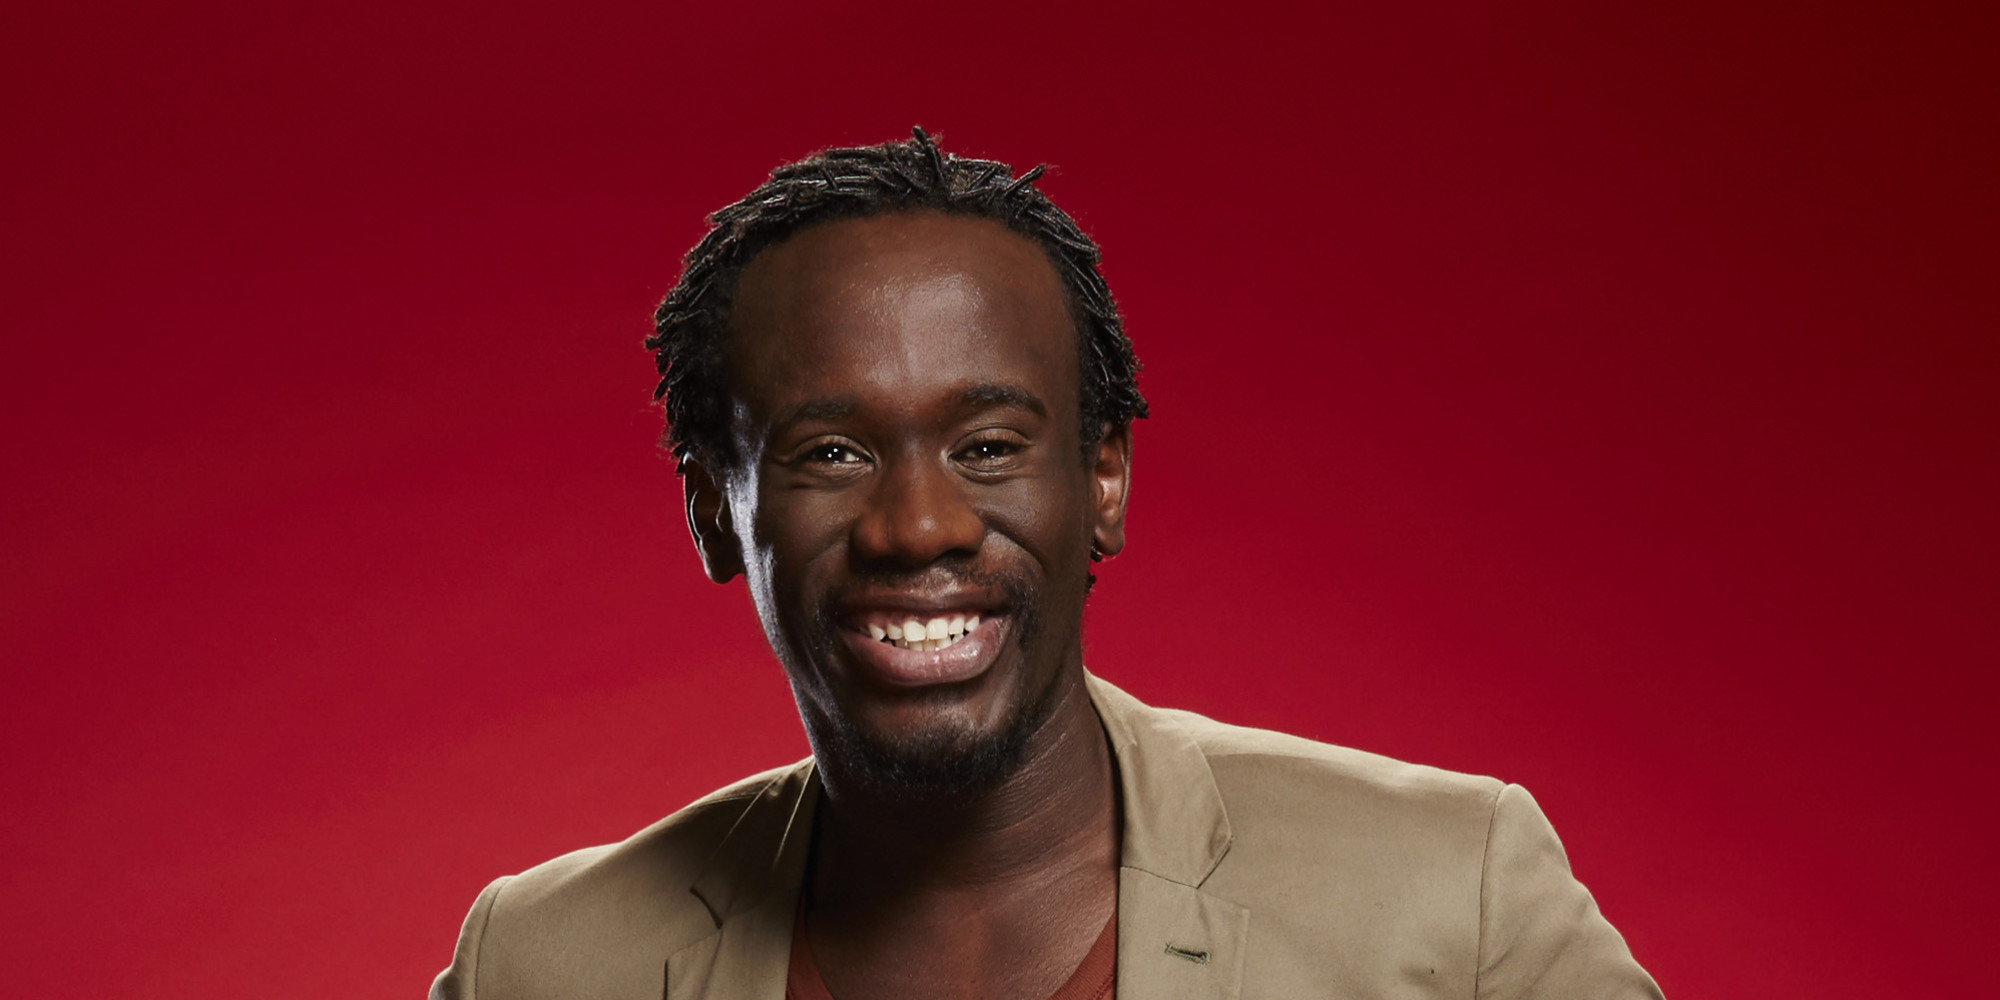 What is Anthony Riley known for?